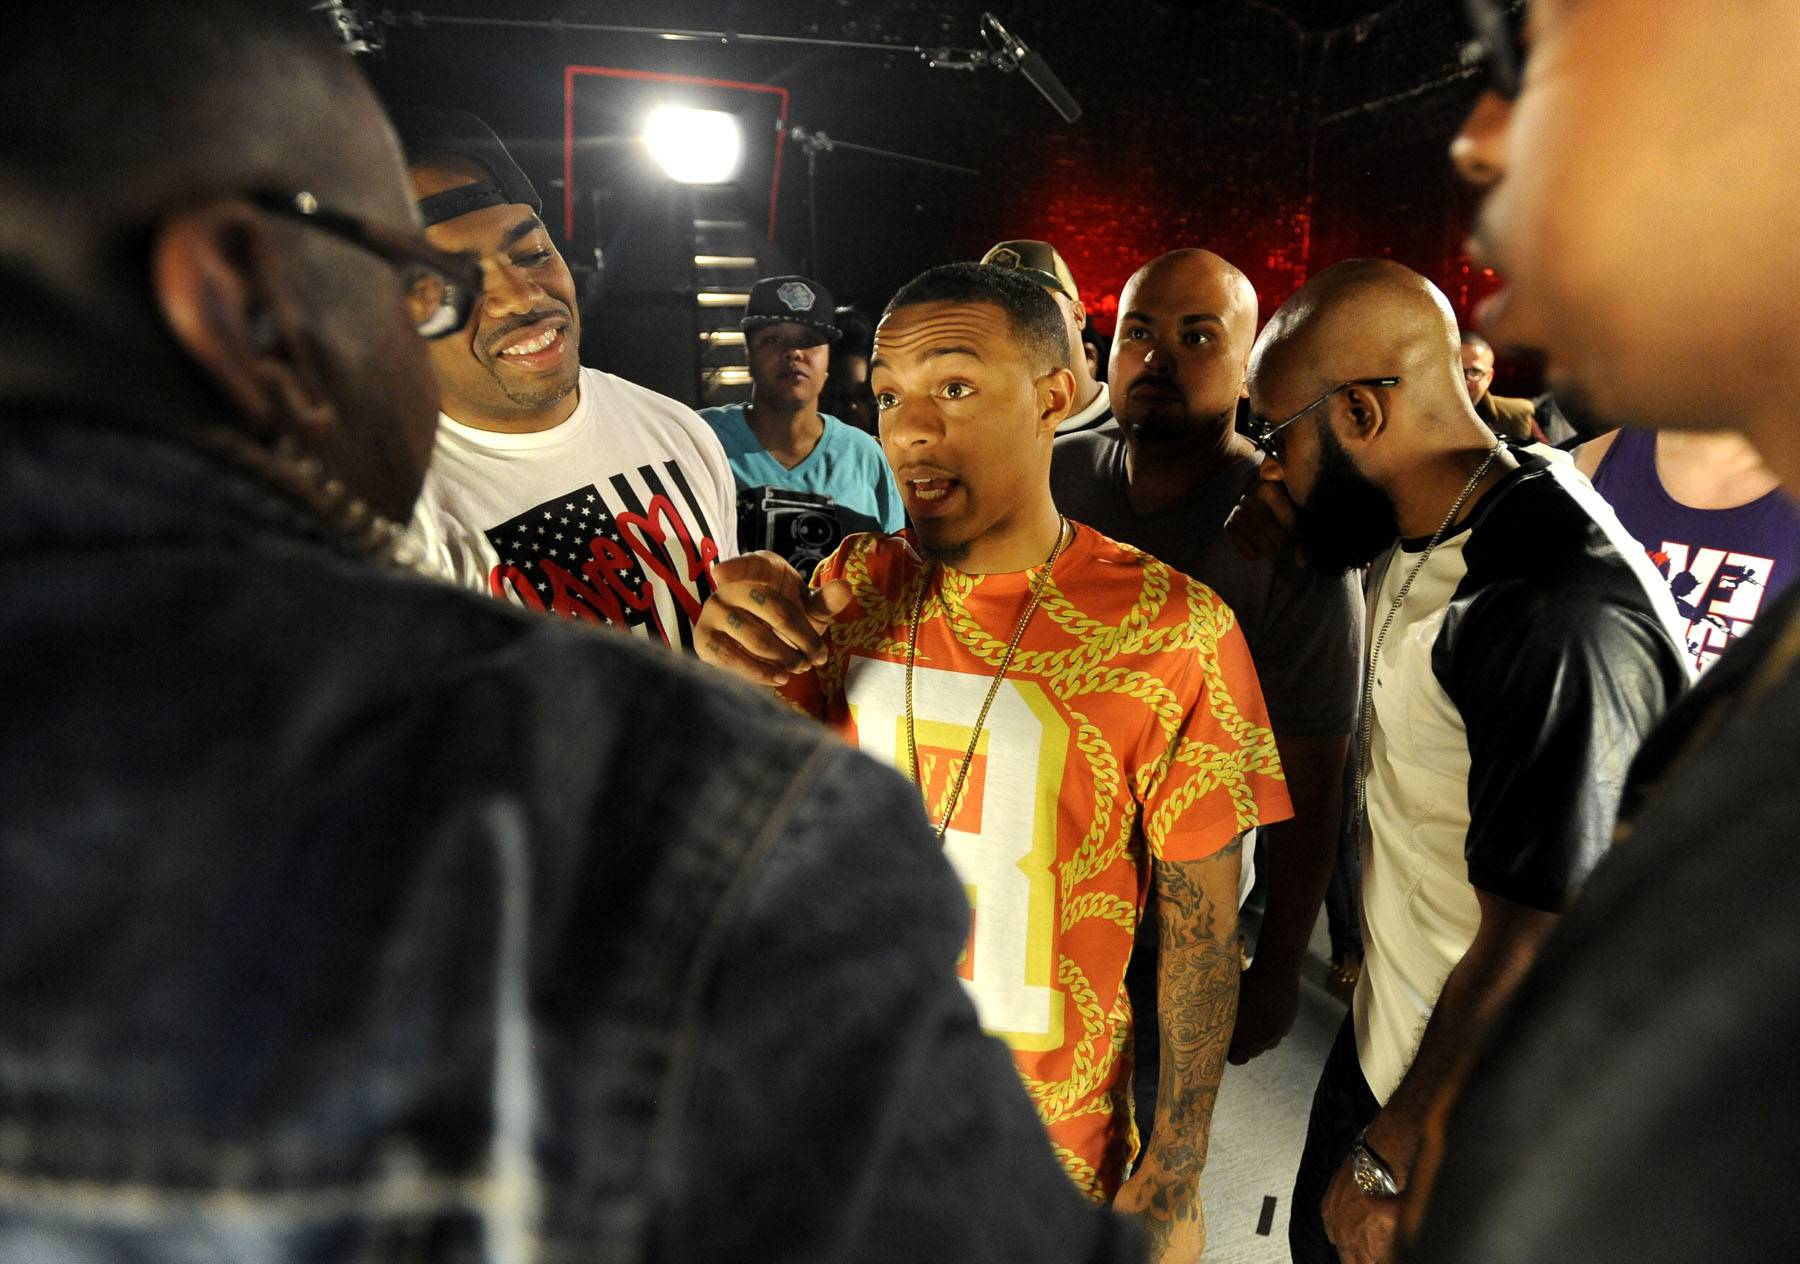 It's On! - Bow Wow is caught in the Ultimate Freestyle Friday battle on 106. (Photo: John Ricard / BET)